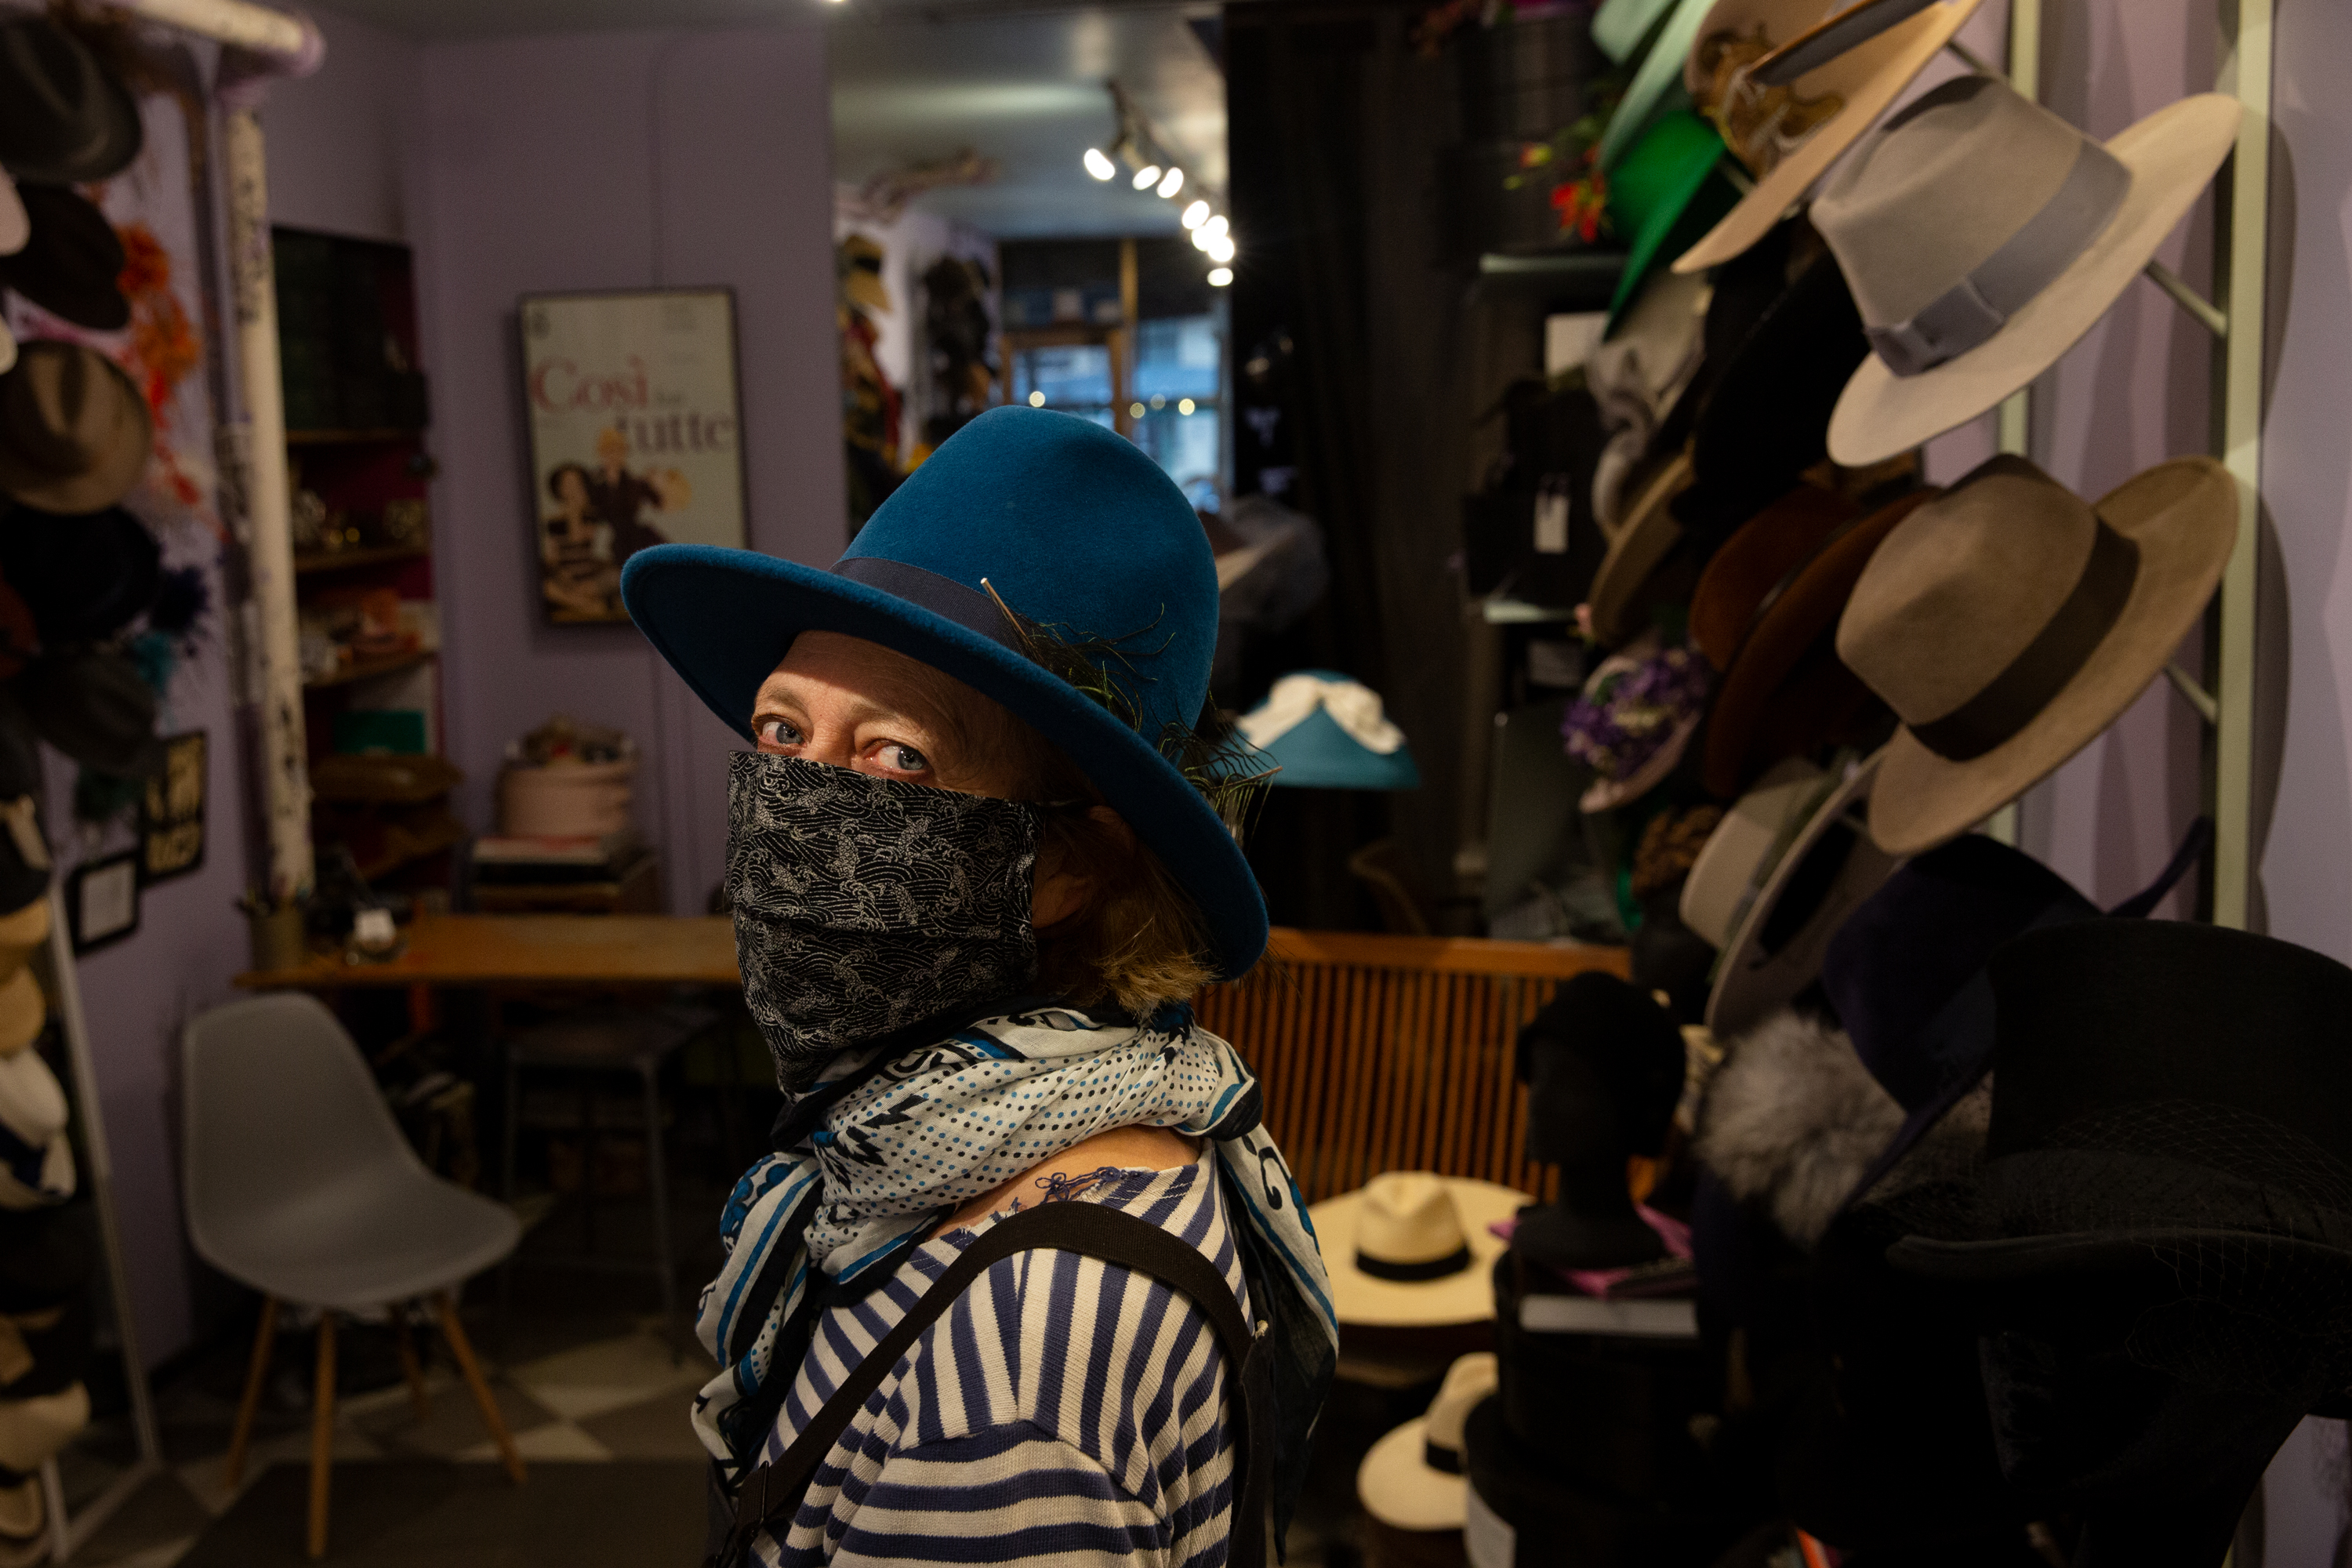 SoHo's The Hat Shop owner Linda Pagan has been working with a coalition so support small businesses during the coronavirus outbreak, Feb. 9, 2021.